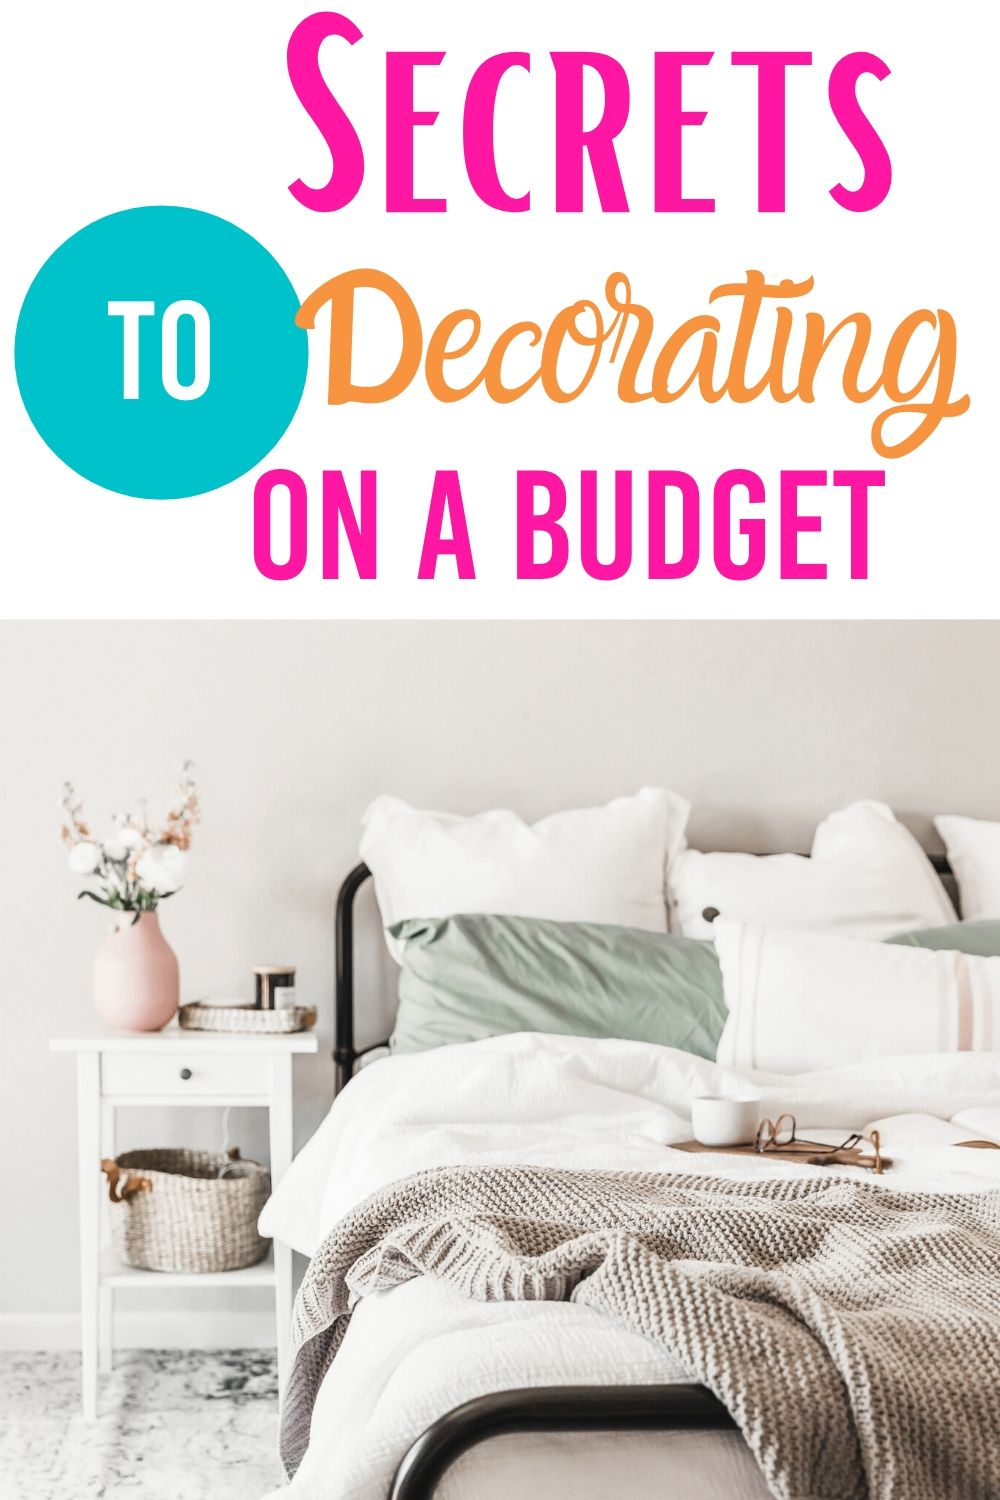 Secrets to decorating on a budget will help you upgrade your home without breaking the piggy bank. Lear how to decorate your home on a budget and get a new look for your home. #decorating #budget #tips #home #apartment #house #simple #cheap #ideas via @homebyjenn